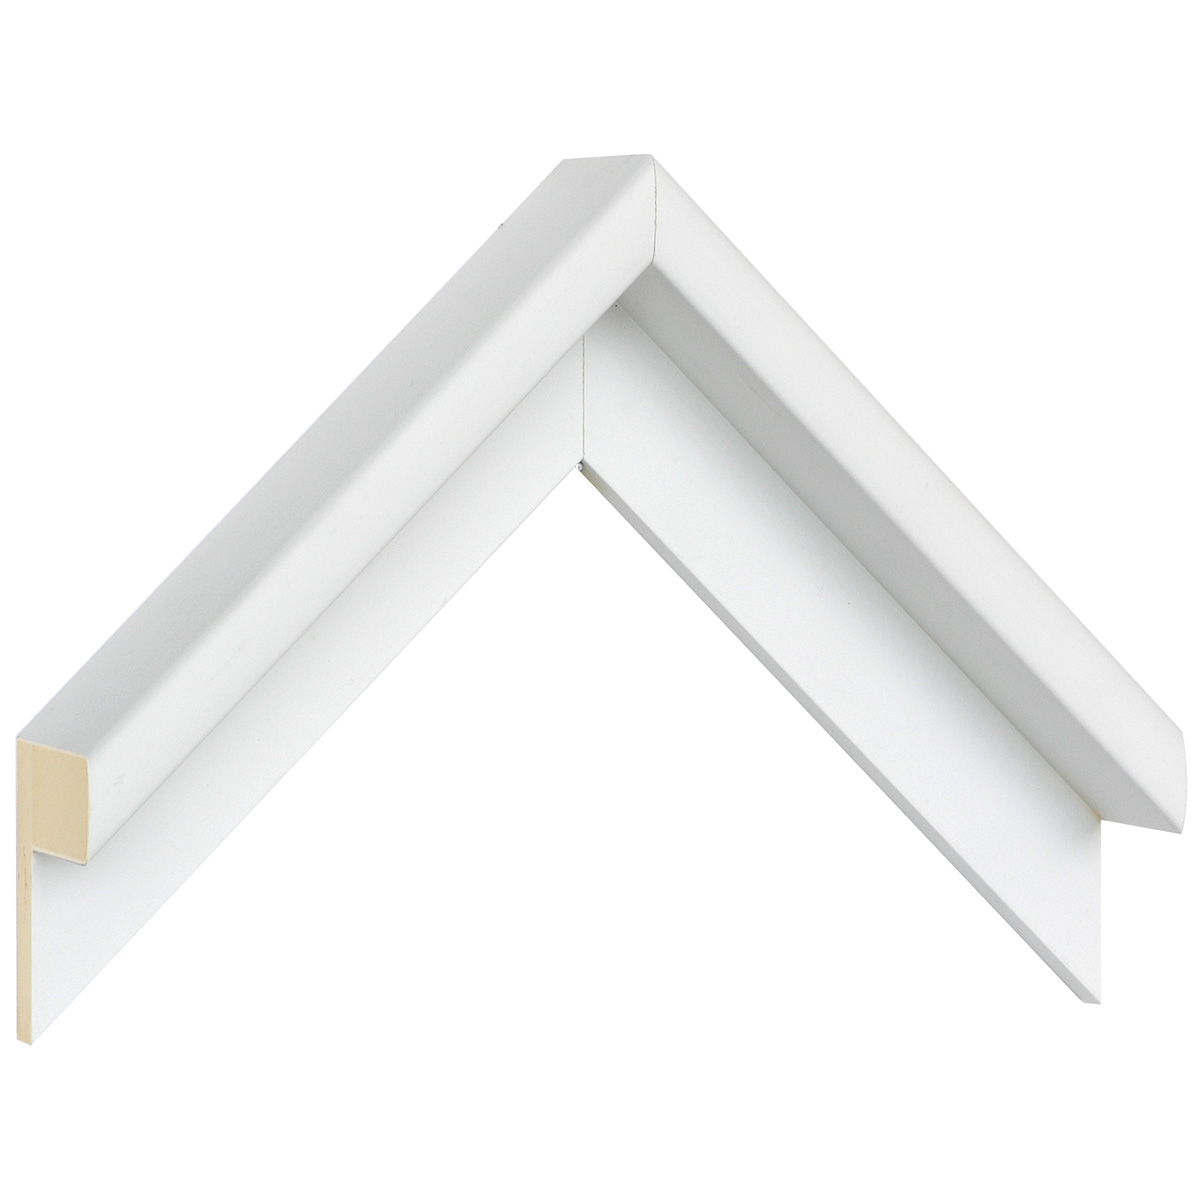 Moulding ayous L shaped Width 38mm Height 54 White, open grain